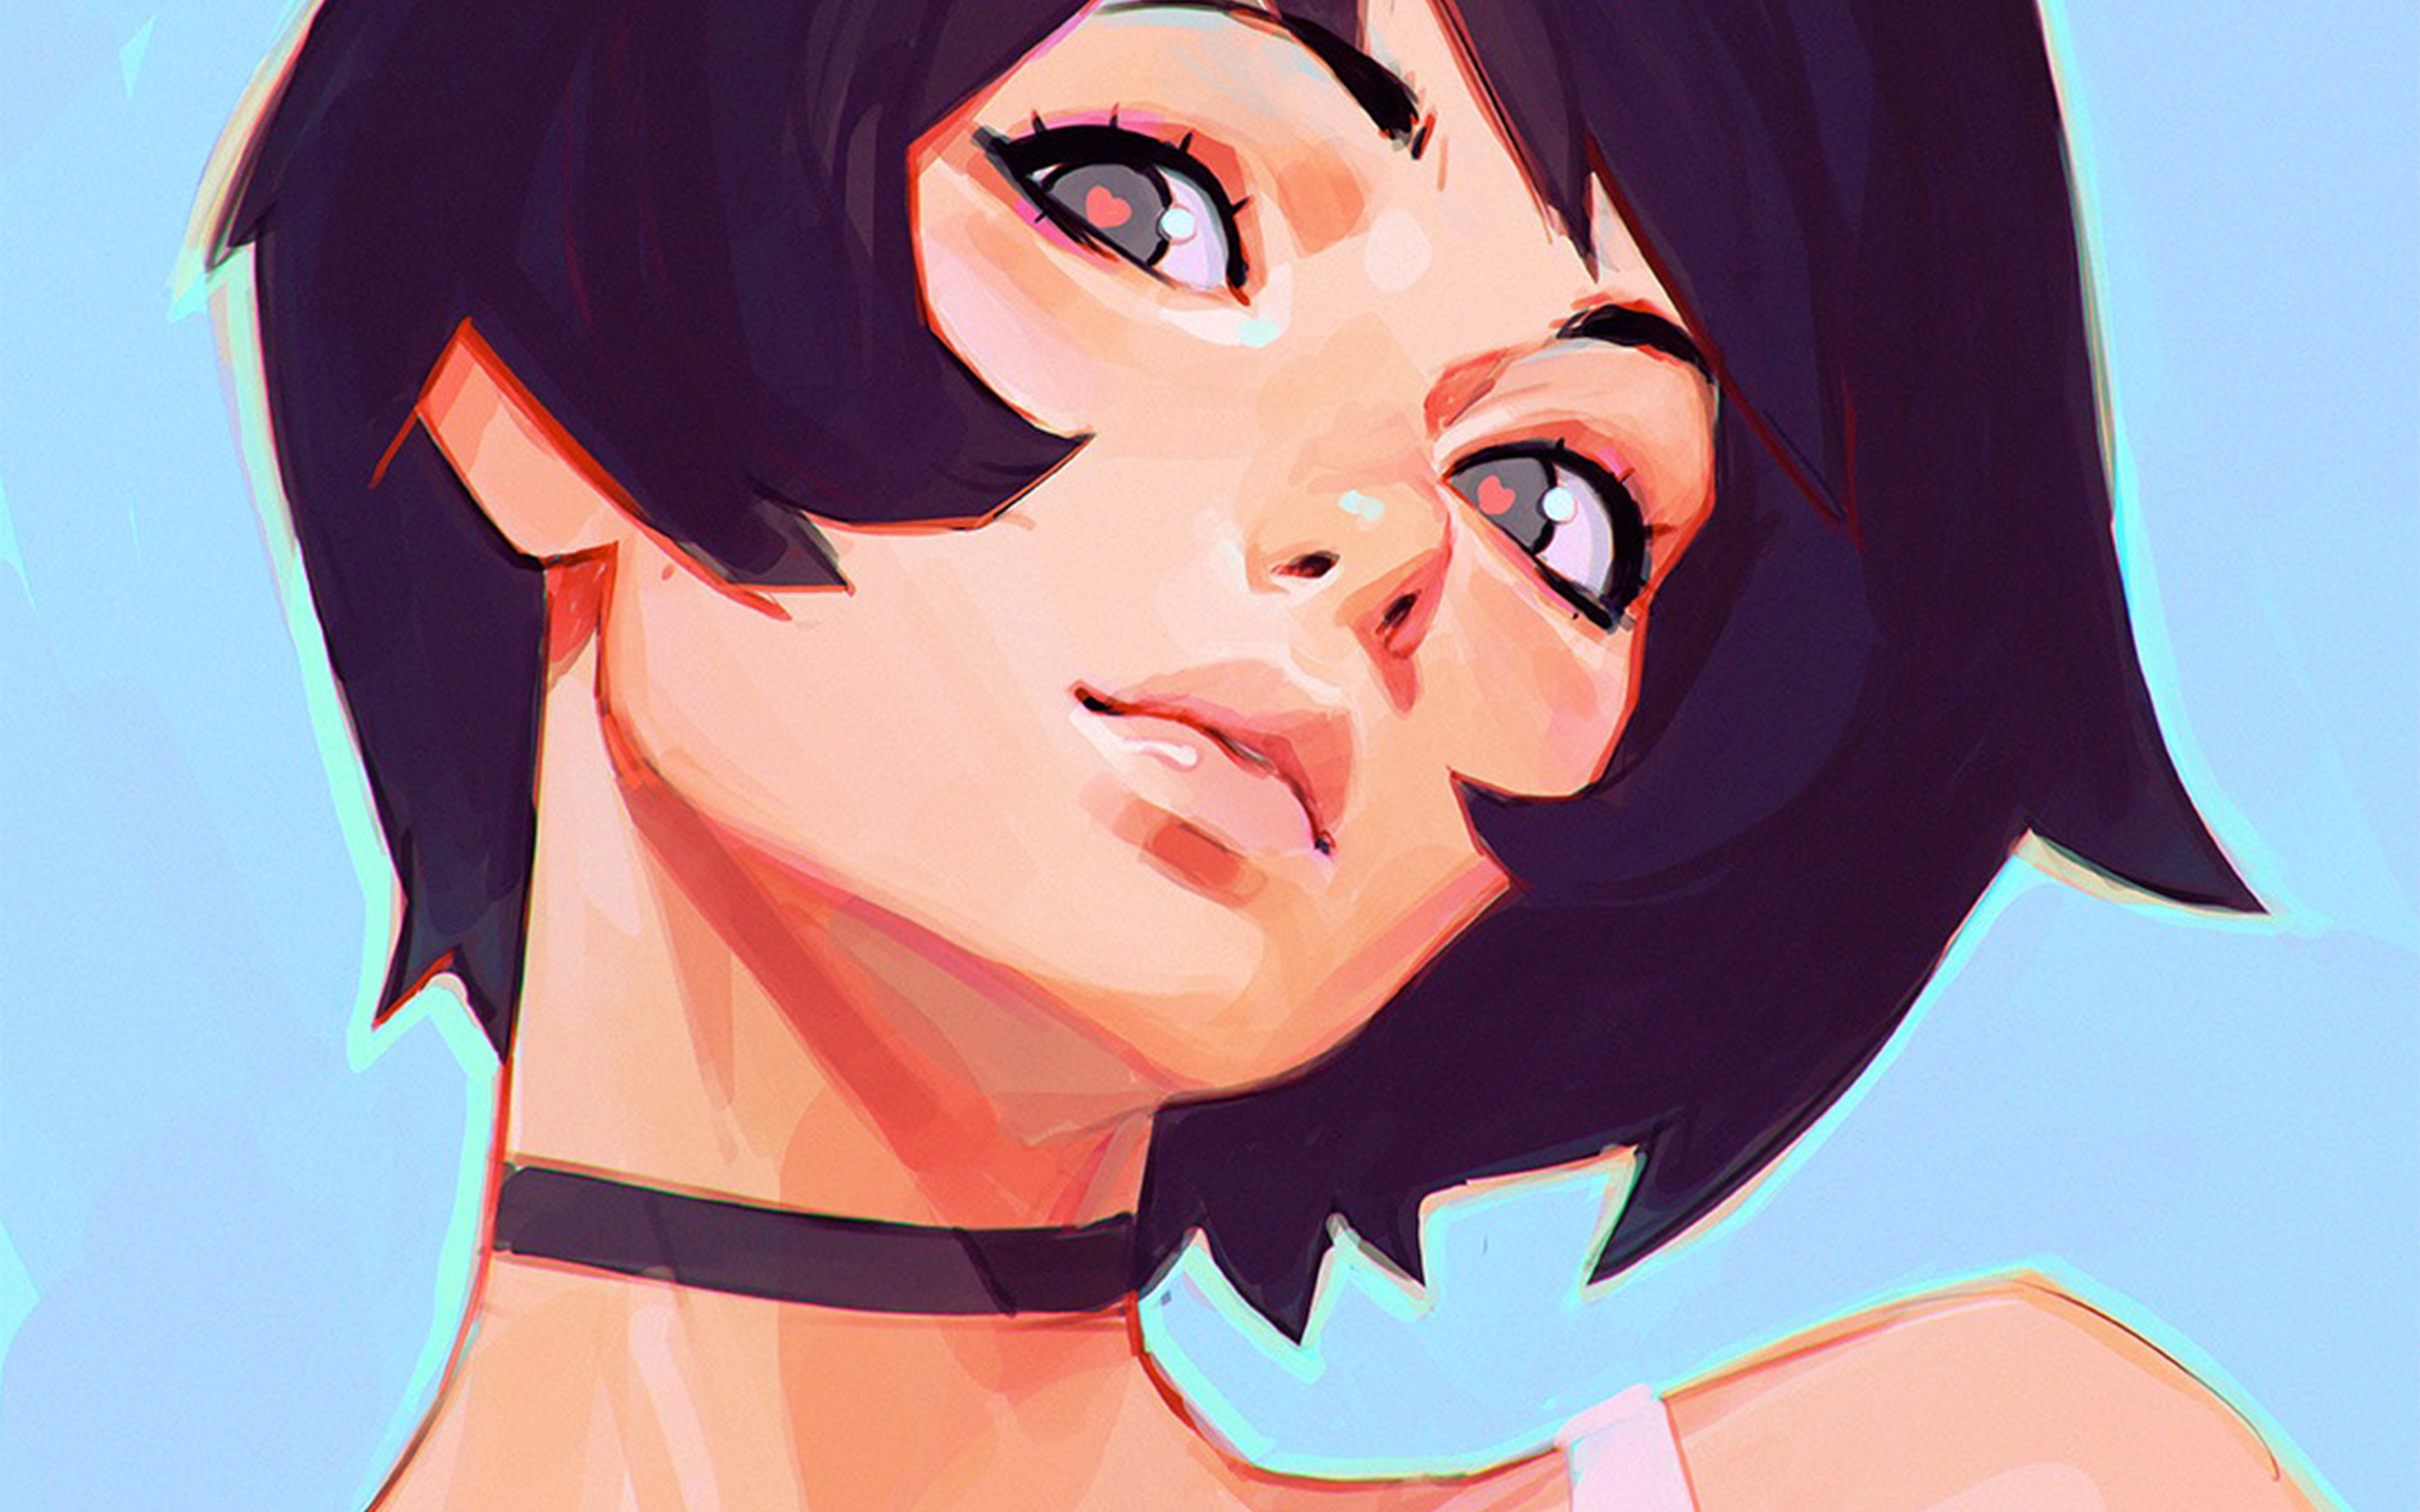 Cute Wallpaper Simple Az35 Girl Face Ilya Kuvshinov Illustration Art Wallpaper